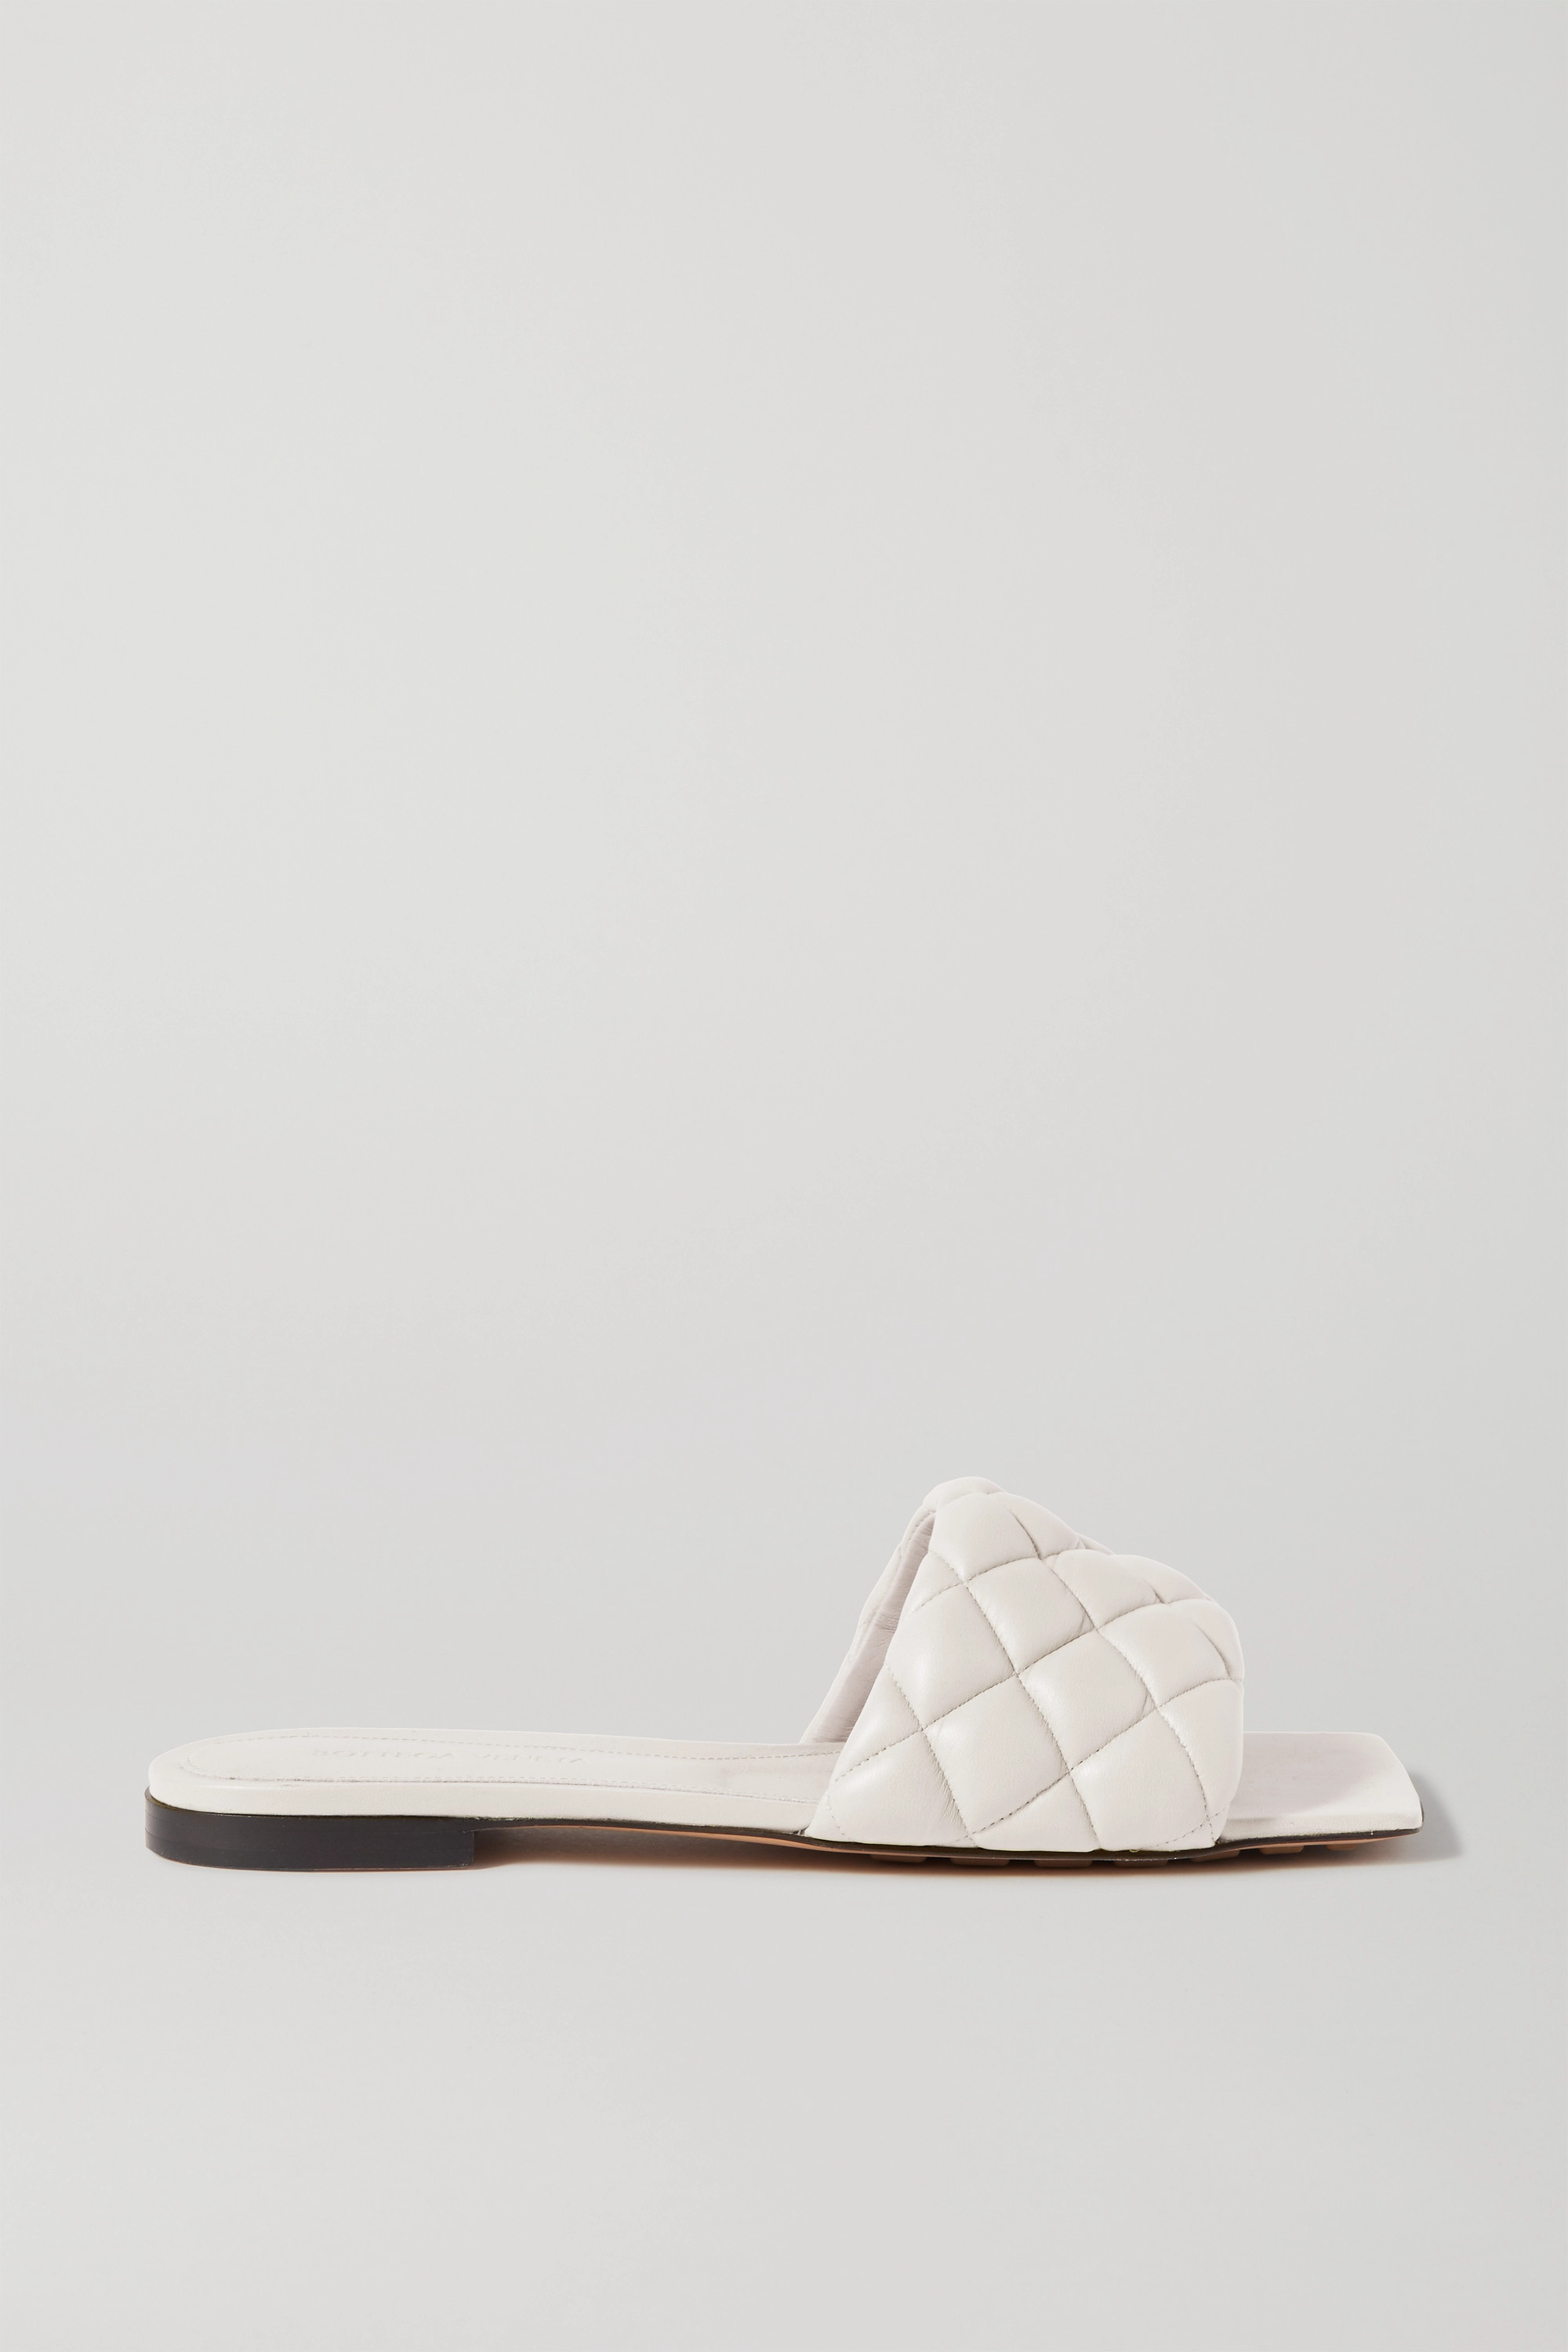 Bottega Veneta - Quilted leather slides